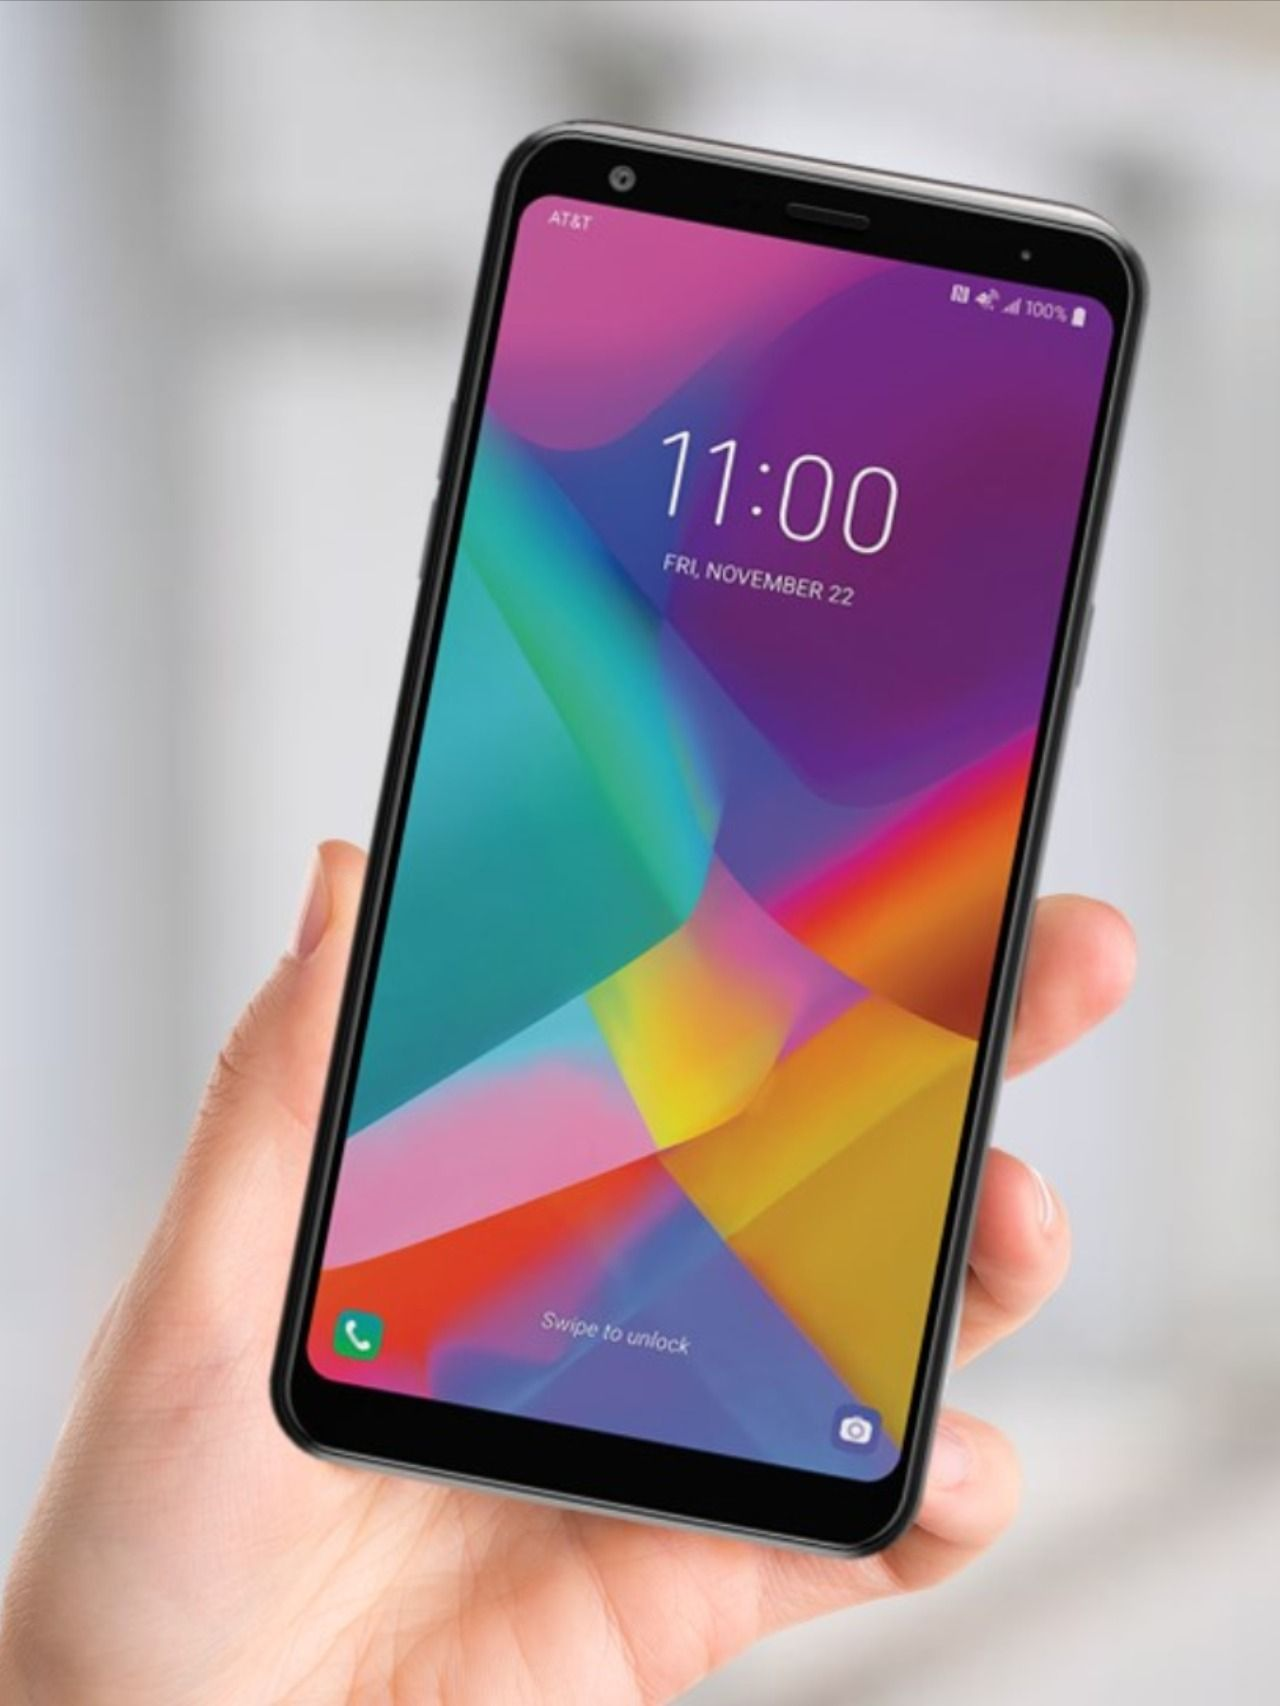 LG Stylo 5 Plus AT&T Price Specs & Reviews Smartphone